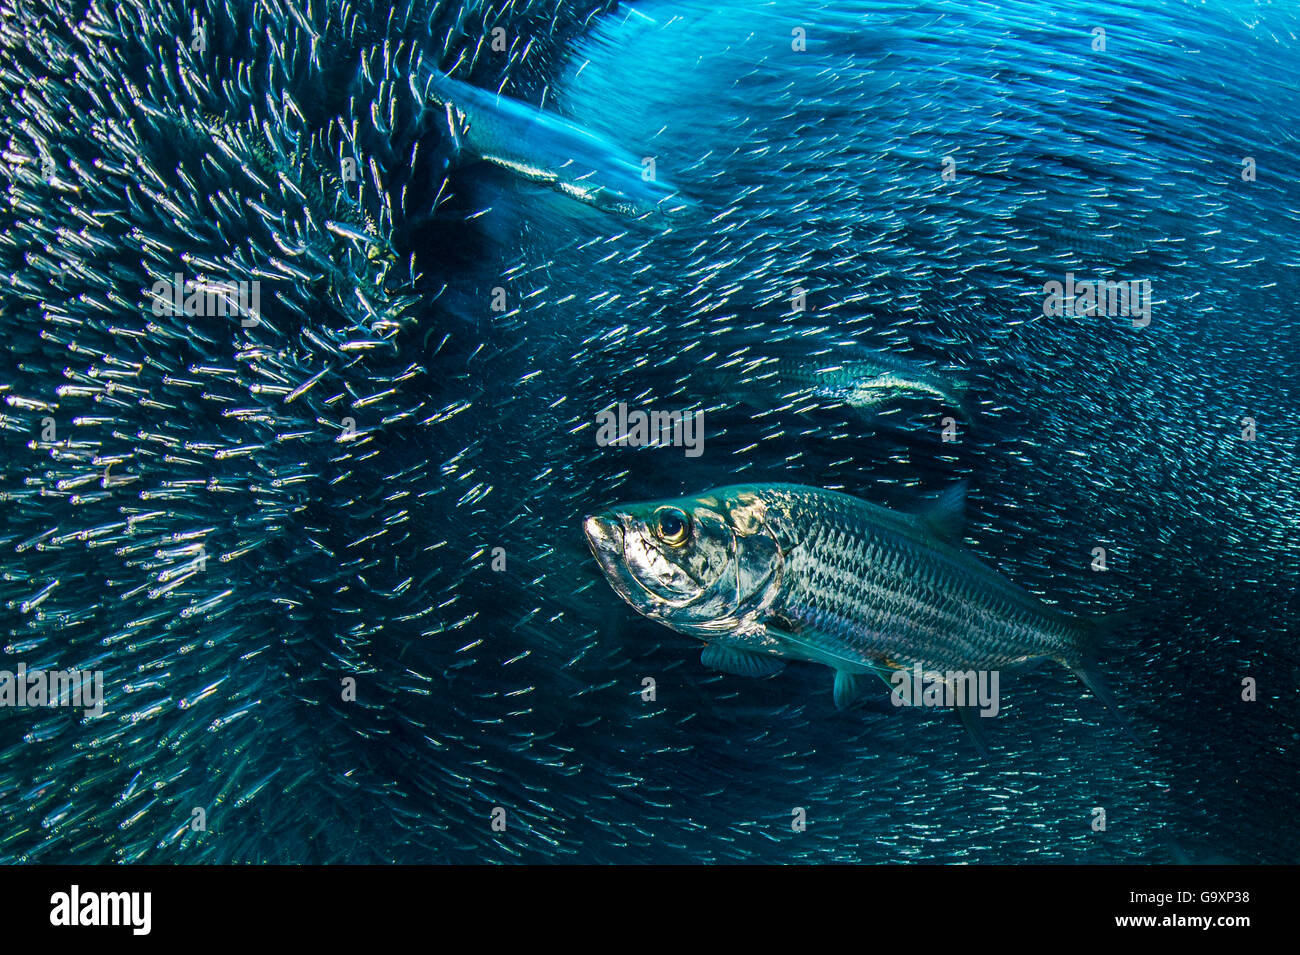 Long exposure of a group of Tarpon (Megalops atlanticus) hunting a school of Silversides (Atherinidae) in a coral - Stock Image